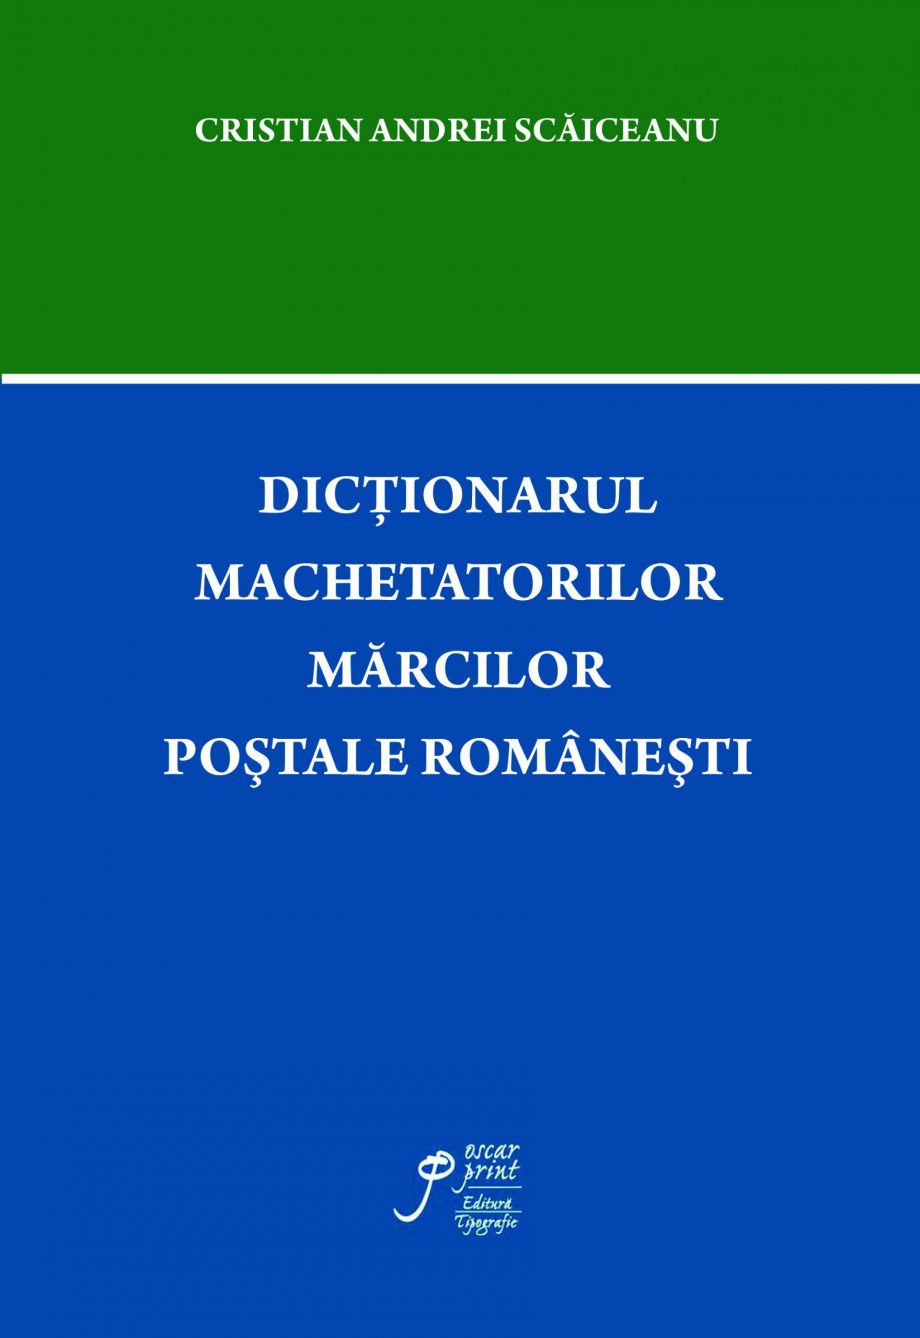 COPERTA DICTIONAR.pdf